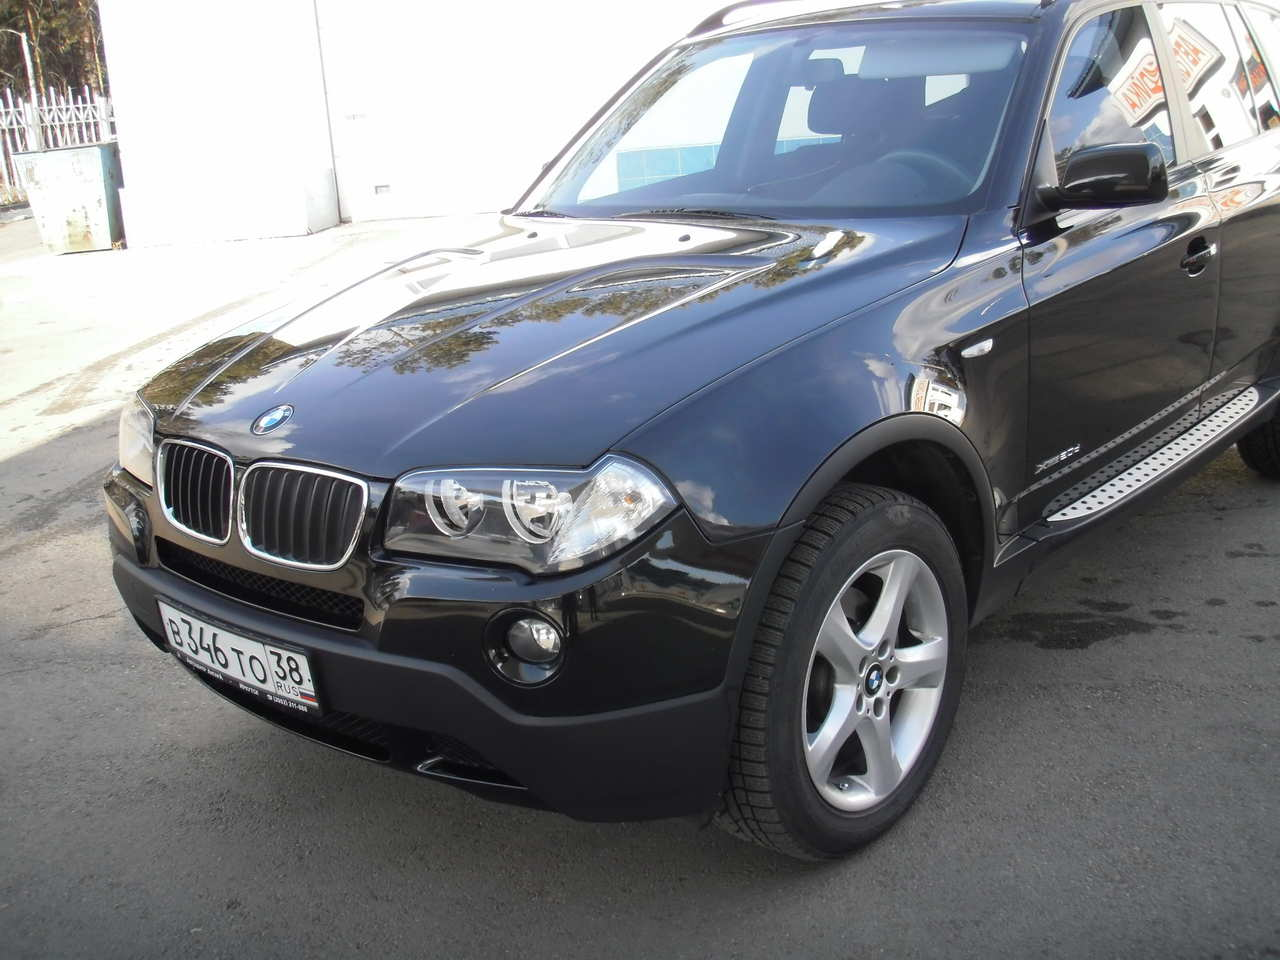 2009 bmw x3 photos 2 0 diesel automatic for sale. Black Bedroom Furniture Sets. Home Design Ideas